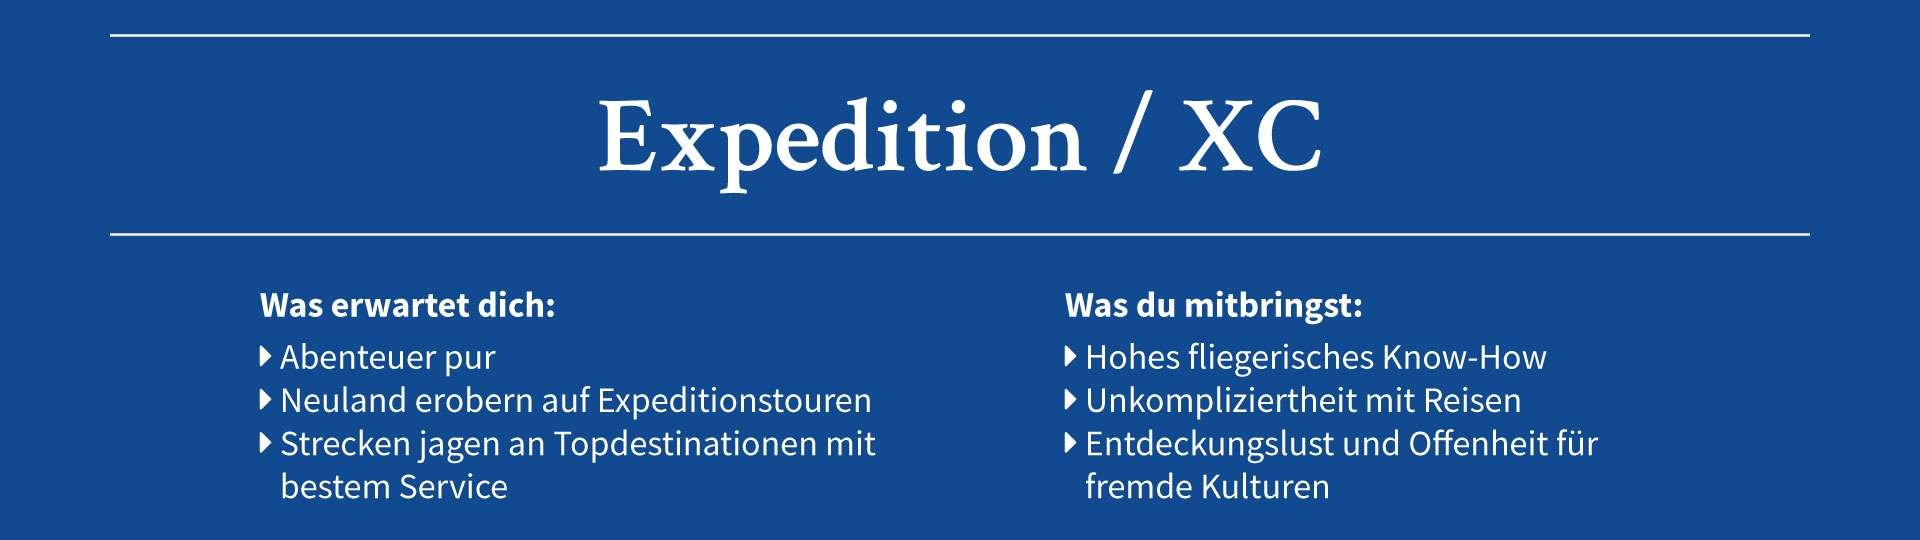 Expedition / XC